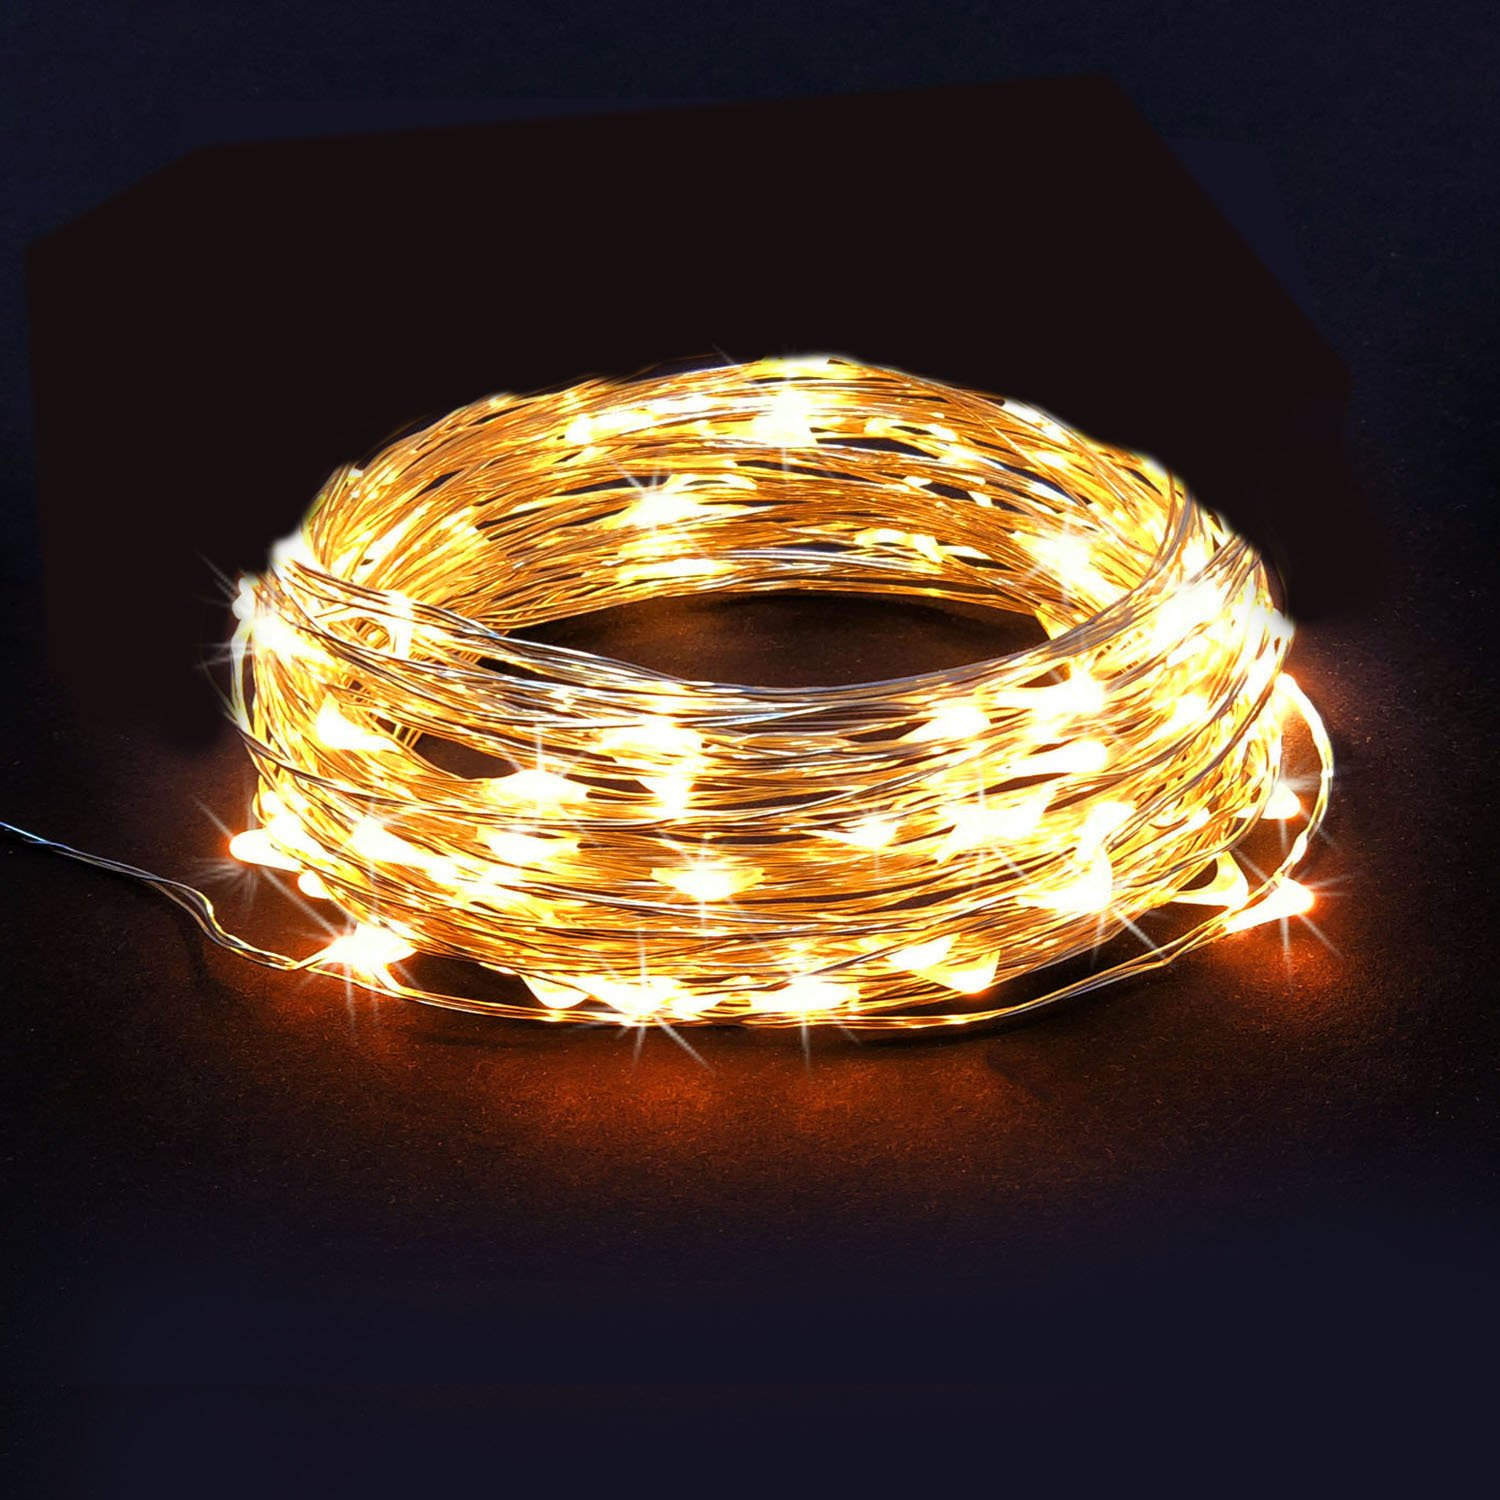 Amazon RTGS 30 LEDs String Lights Batteries Operated on 10